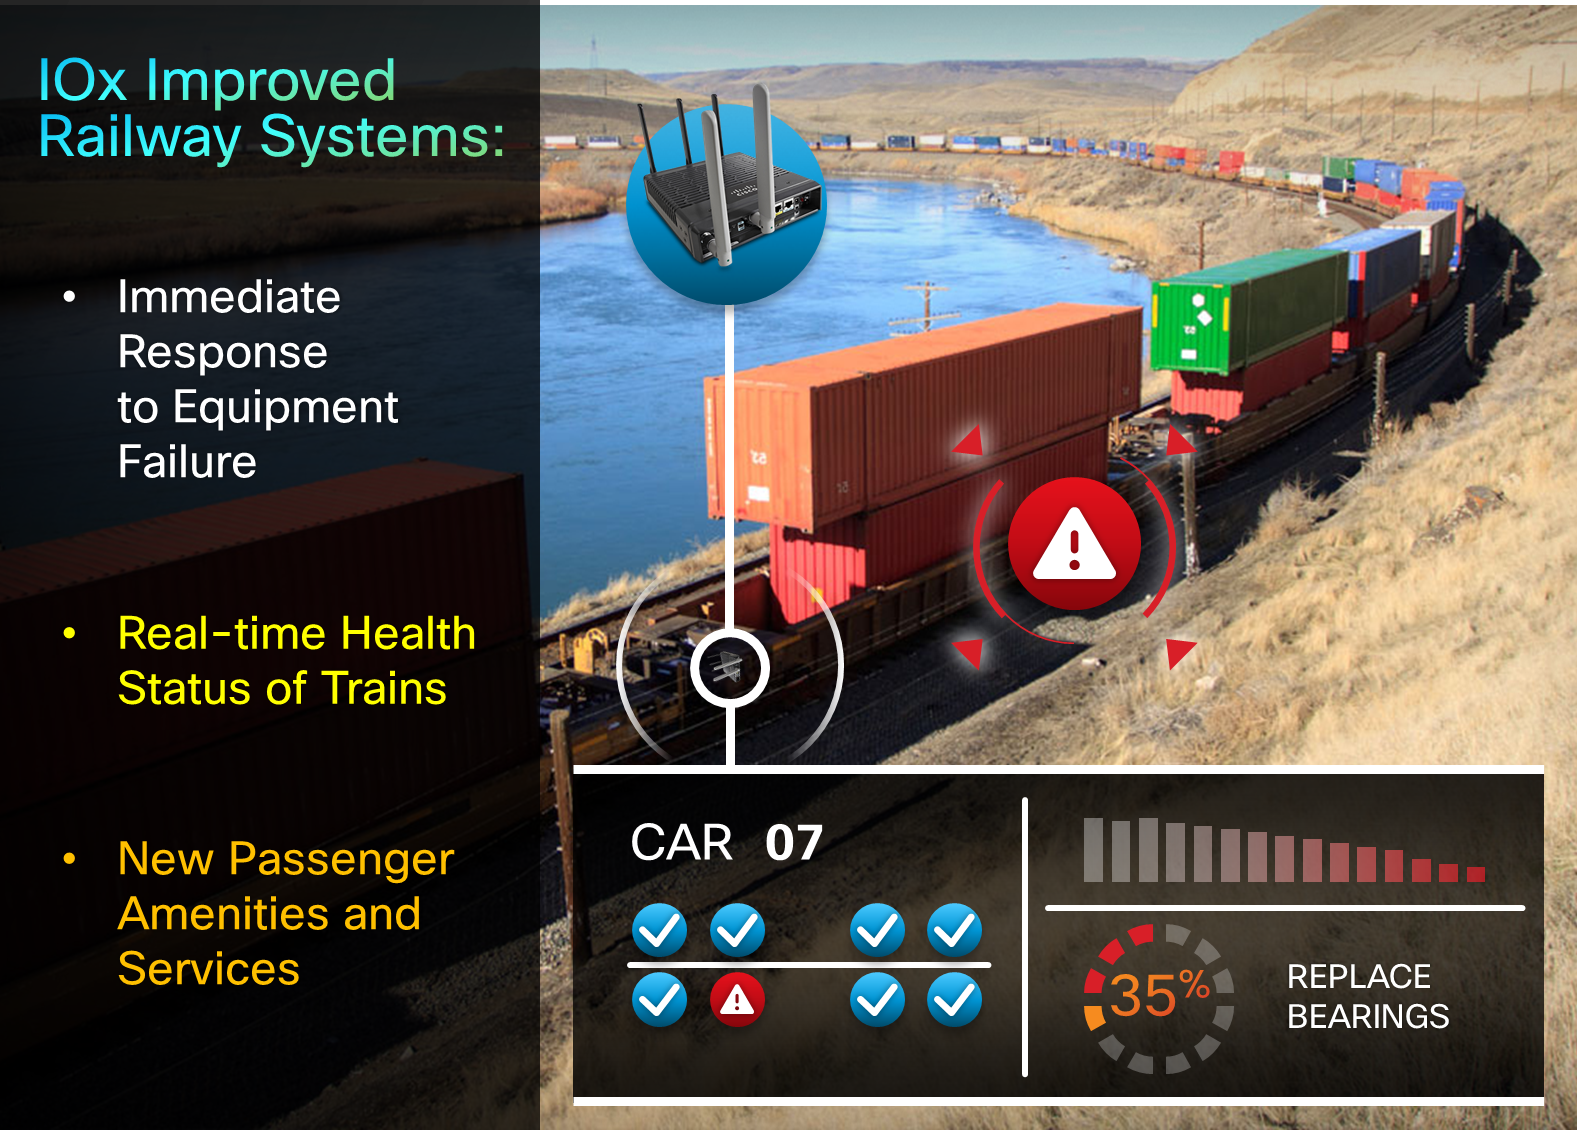 Smart Trains Enabled by IOx